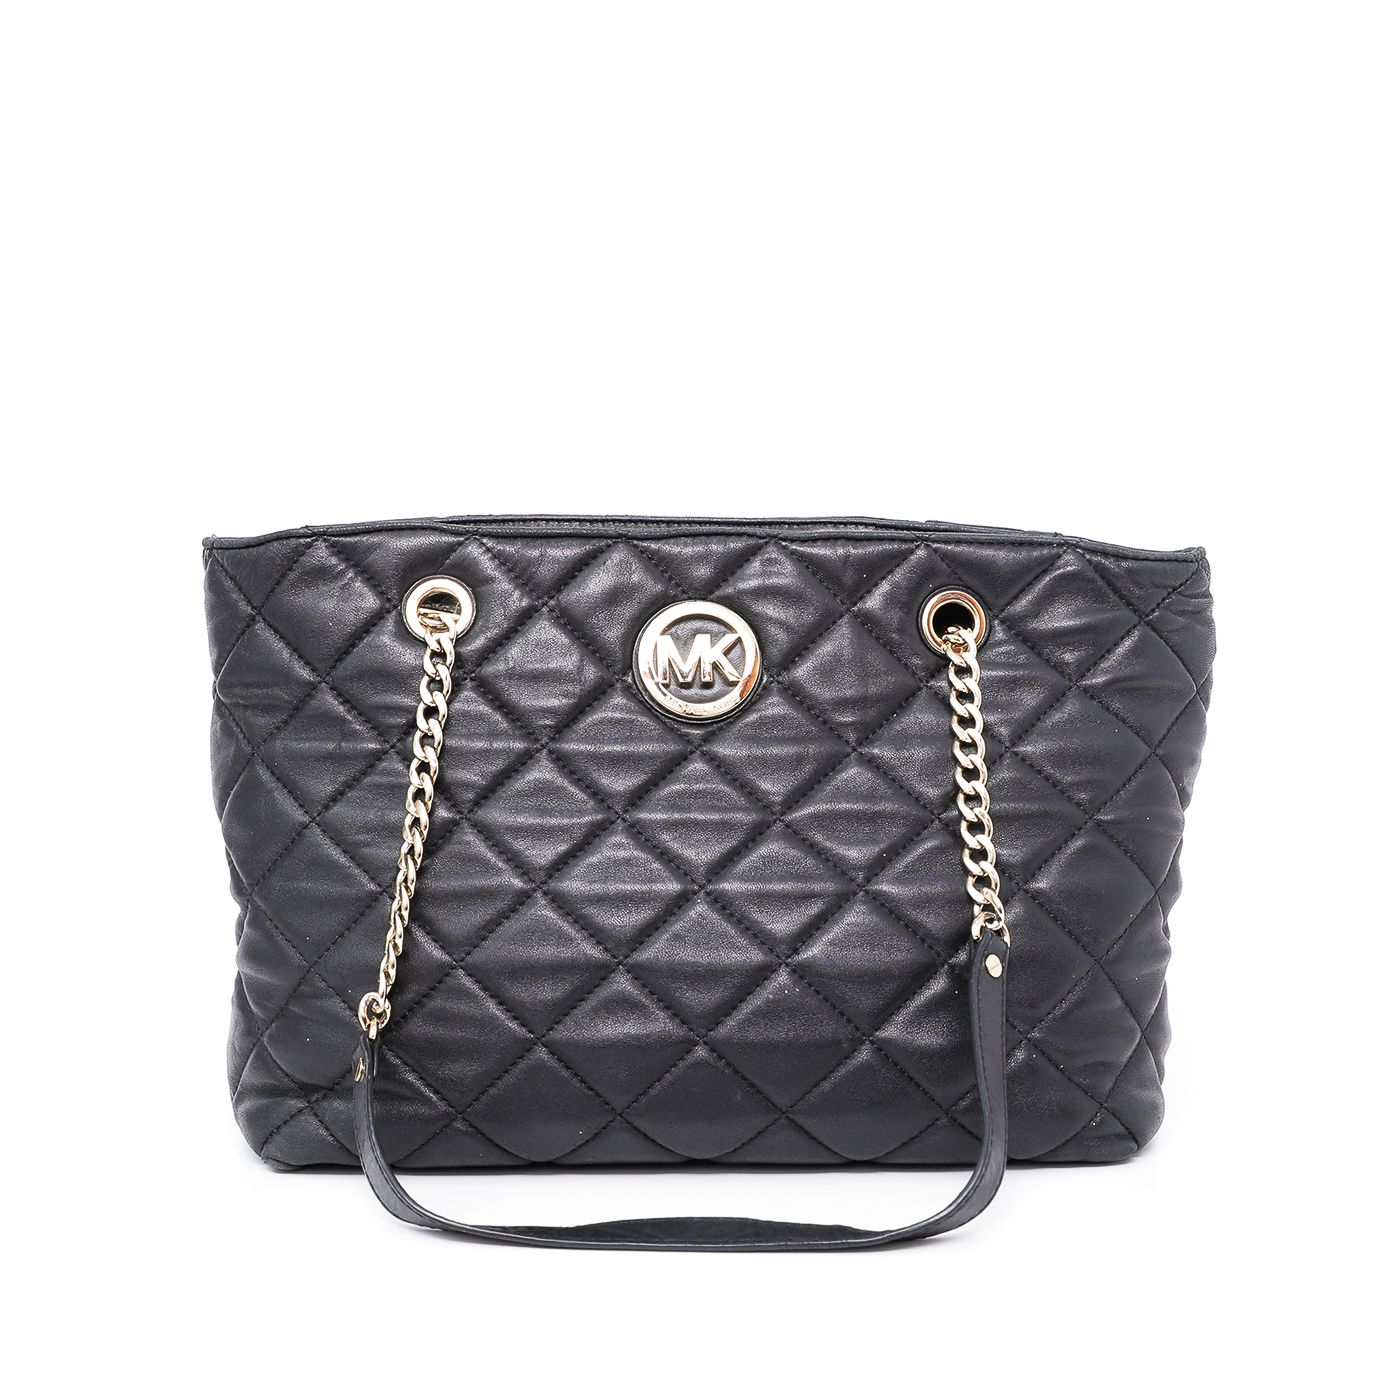 Michael Kors Black Fulton Quilted Shopping Tote